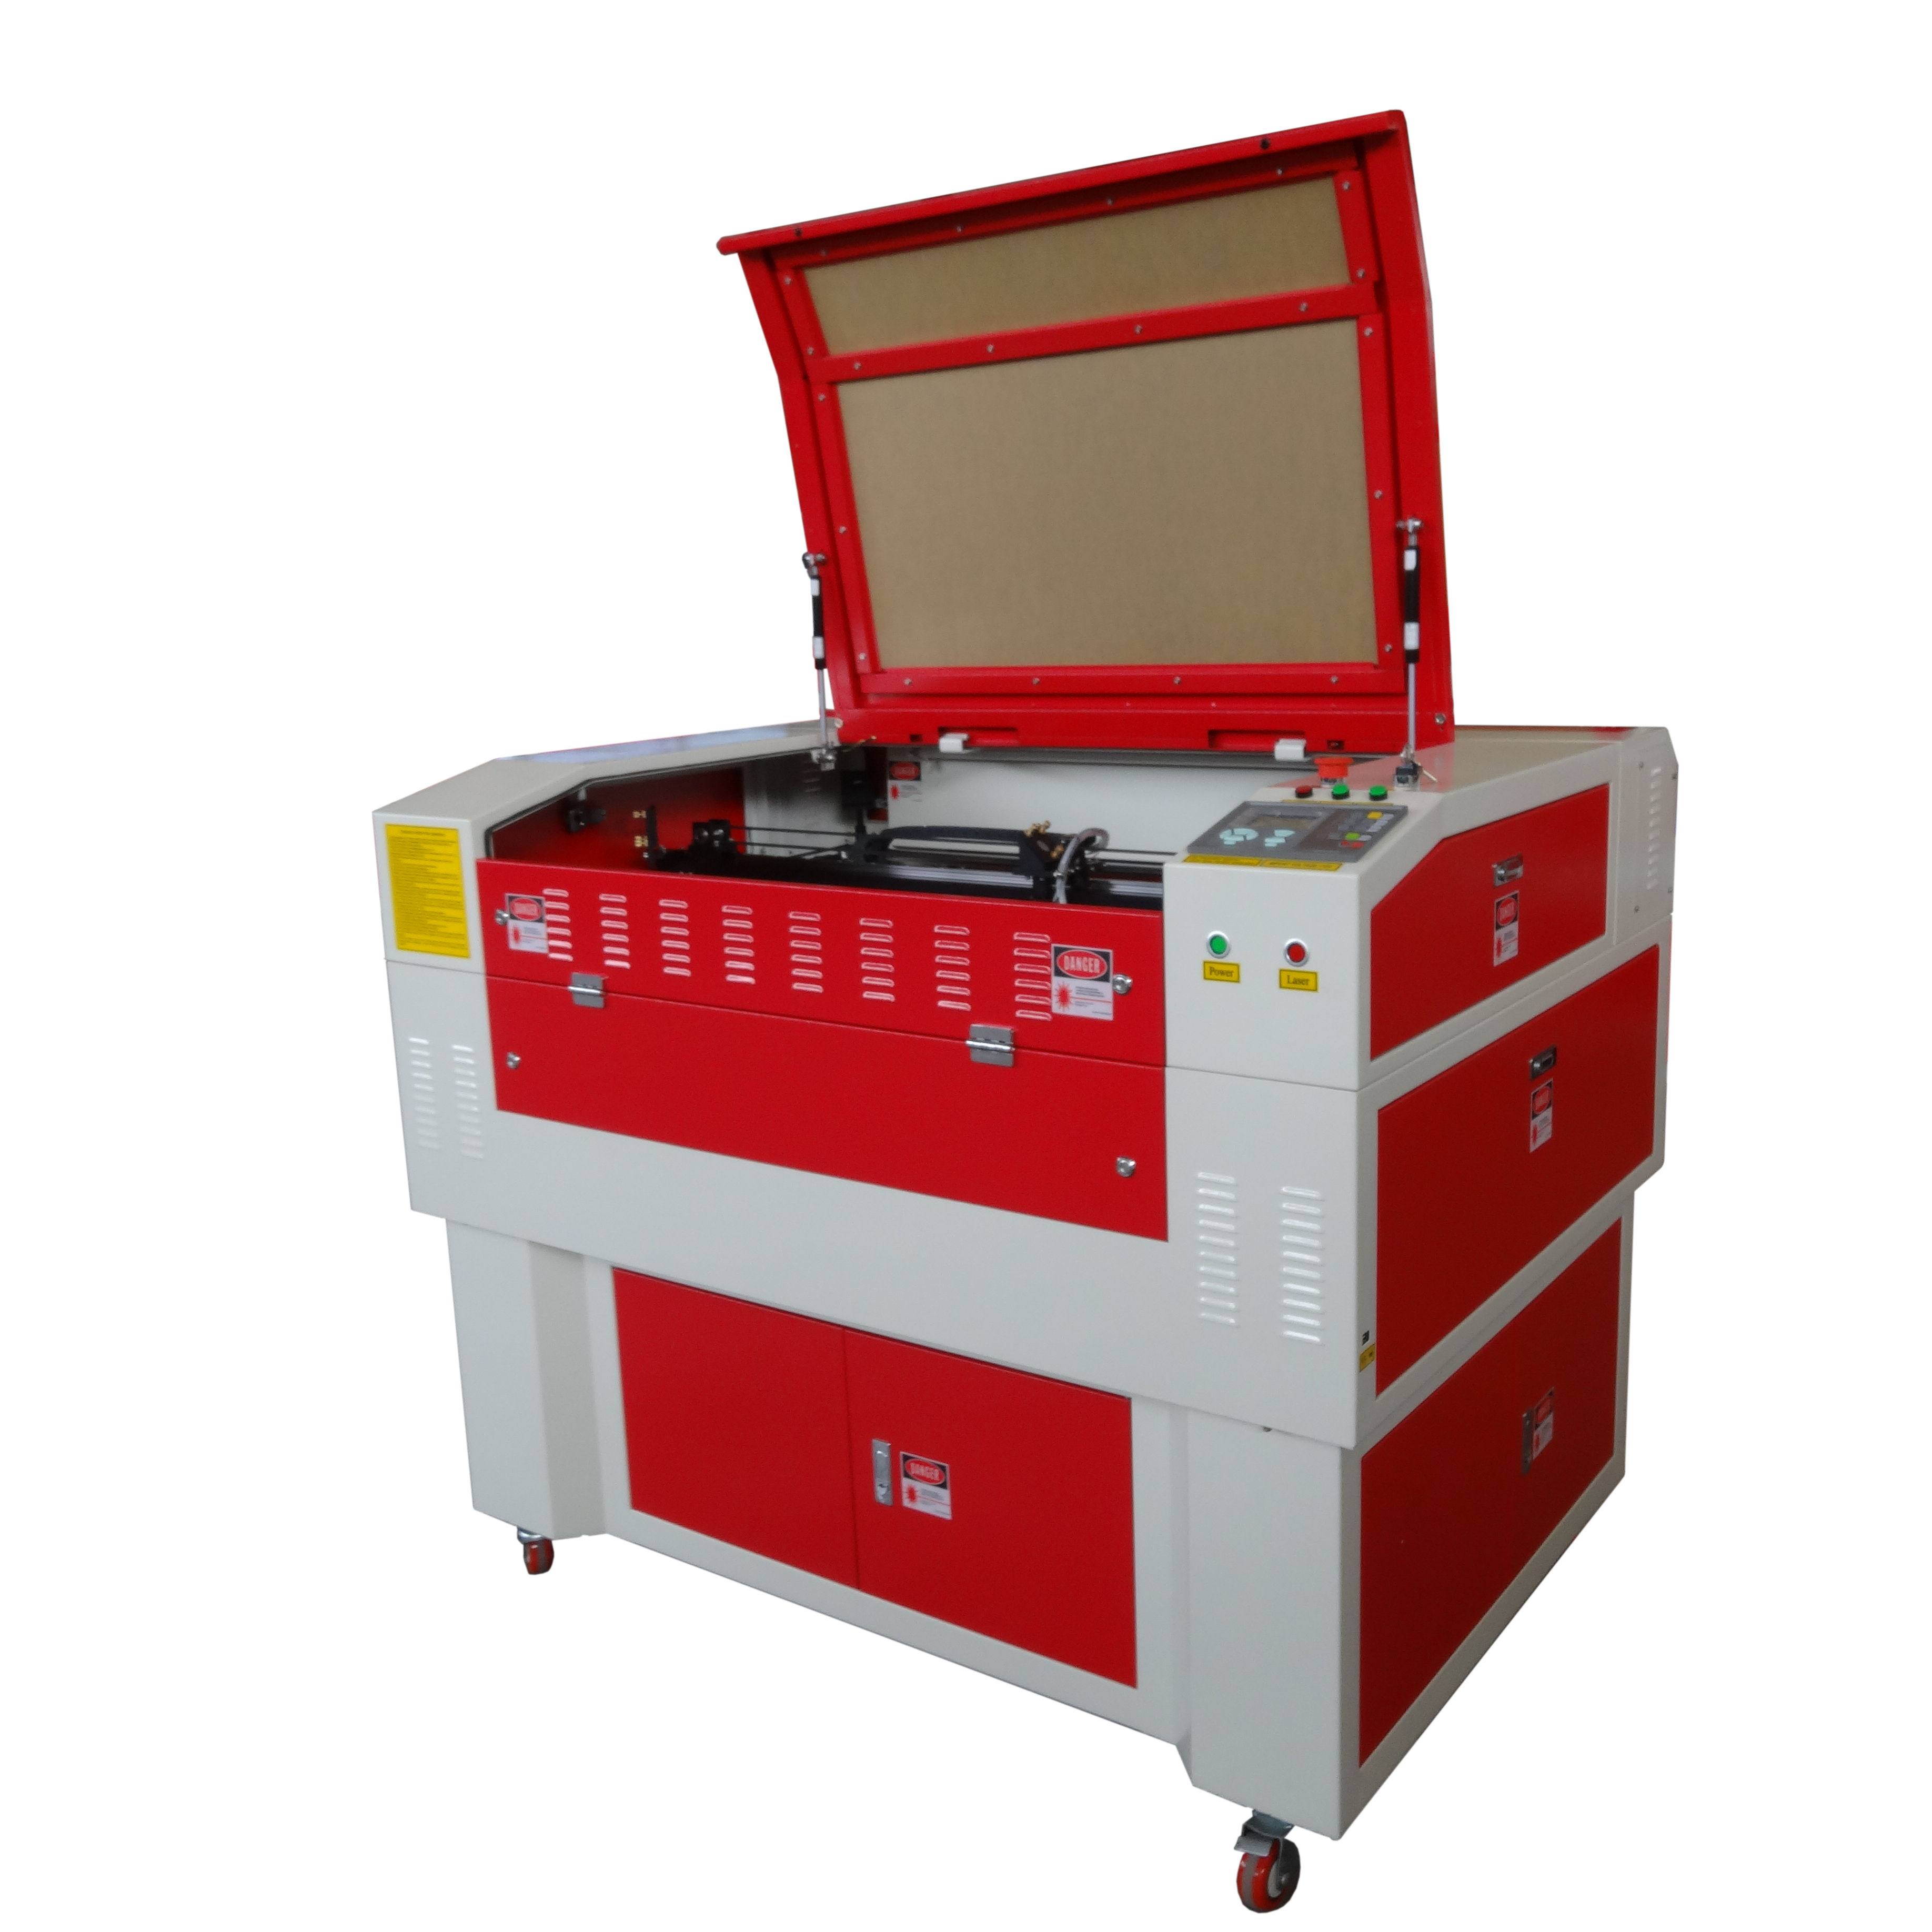 6090 CNC co2 laser cutting machine application Advertising, Embroidery, garments, shoemaking, label processing, arts and crafts